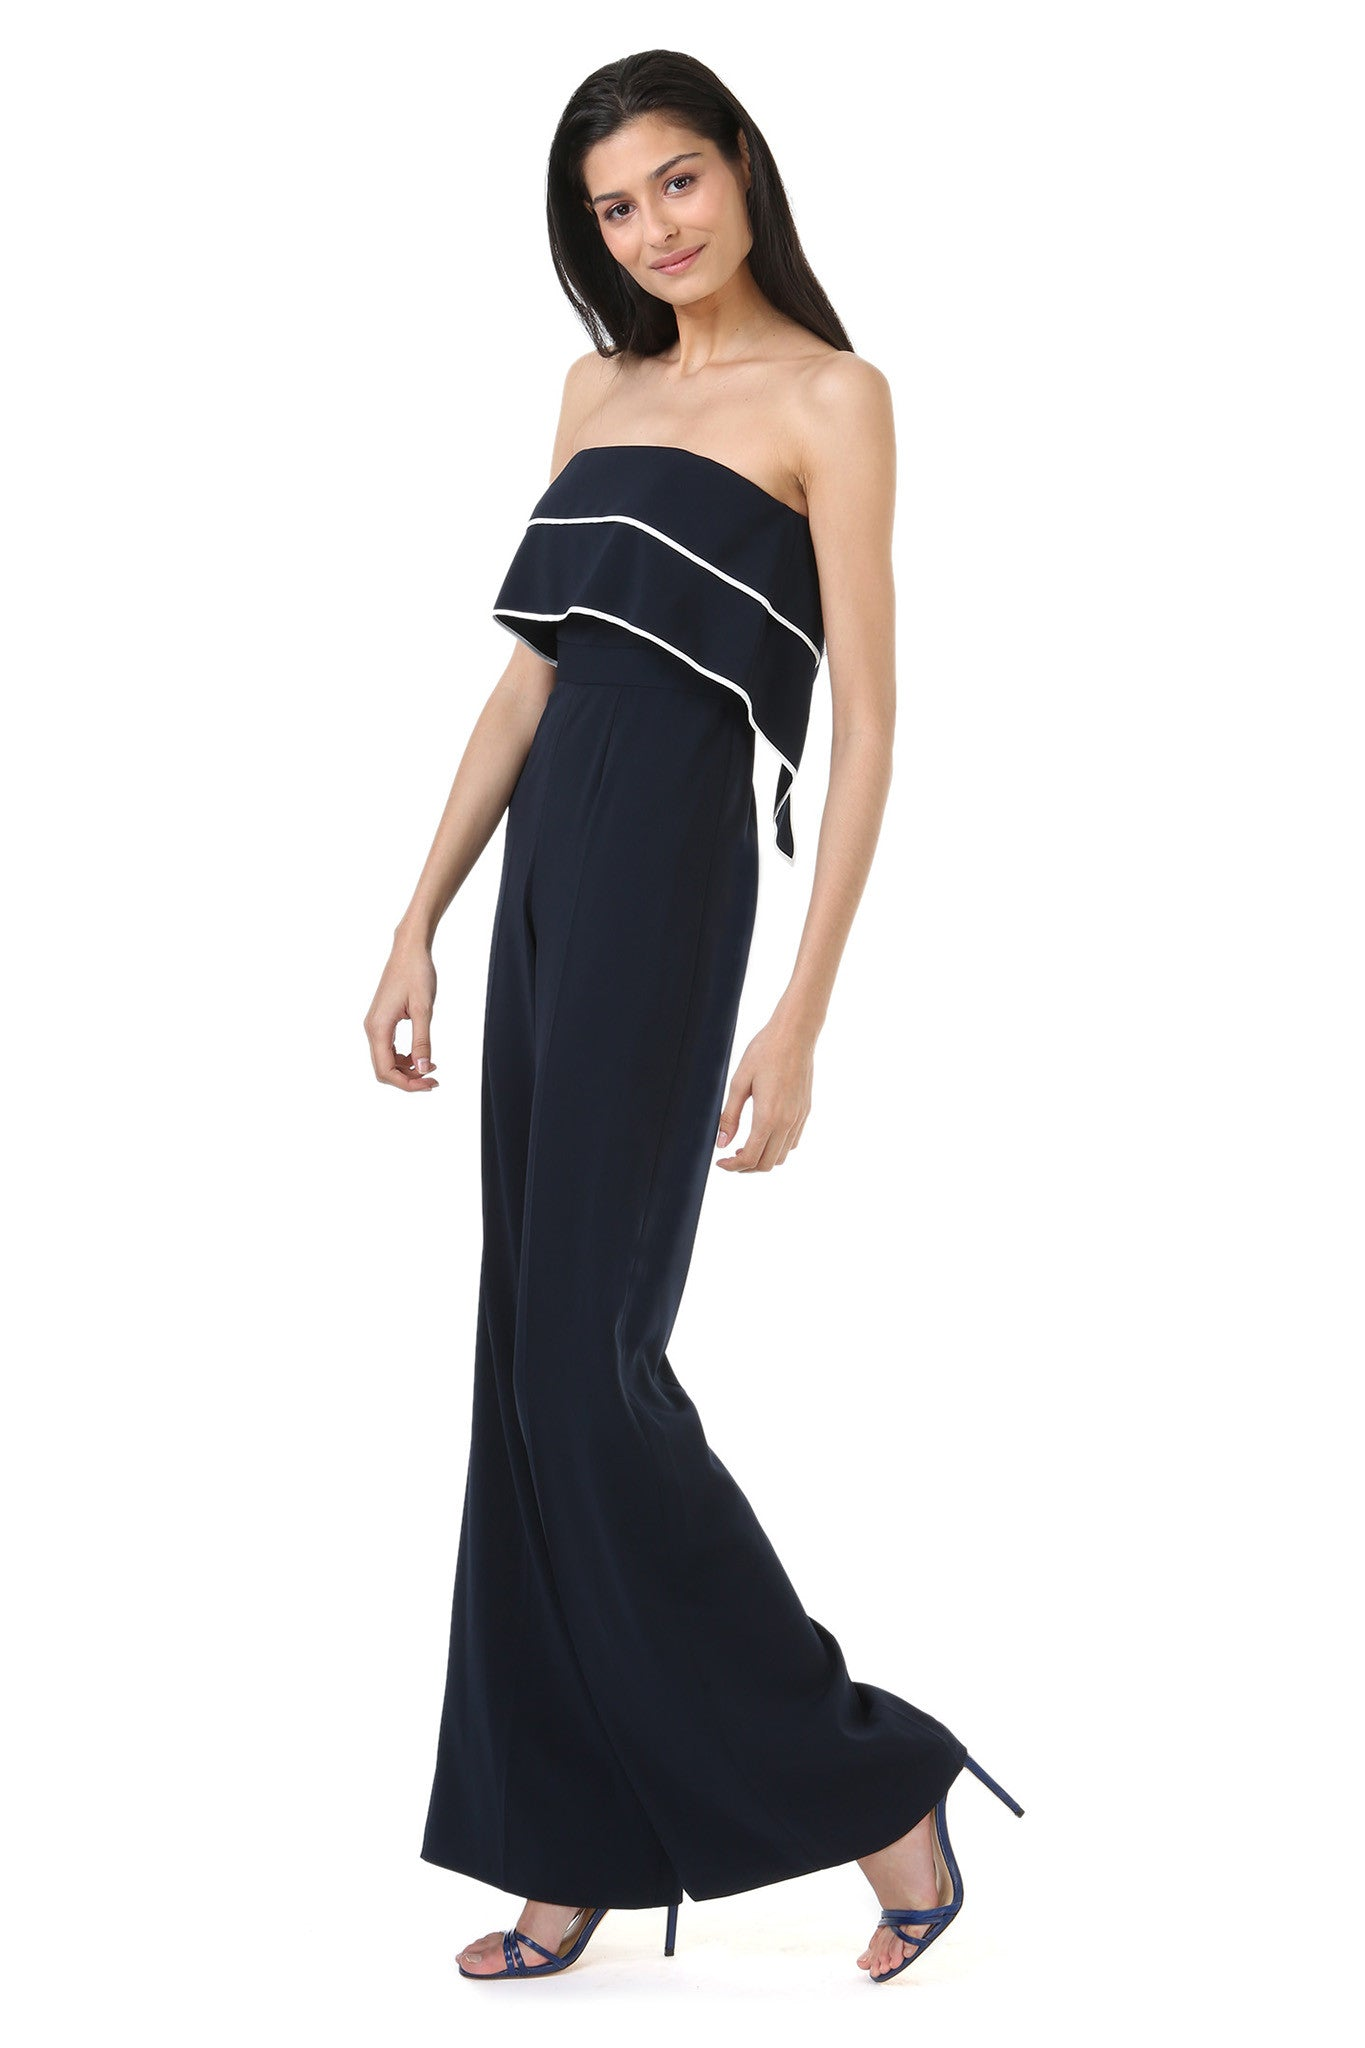 Strapless Navy Jumpsuit with Overlay - Side View